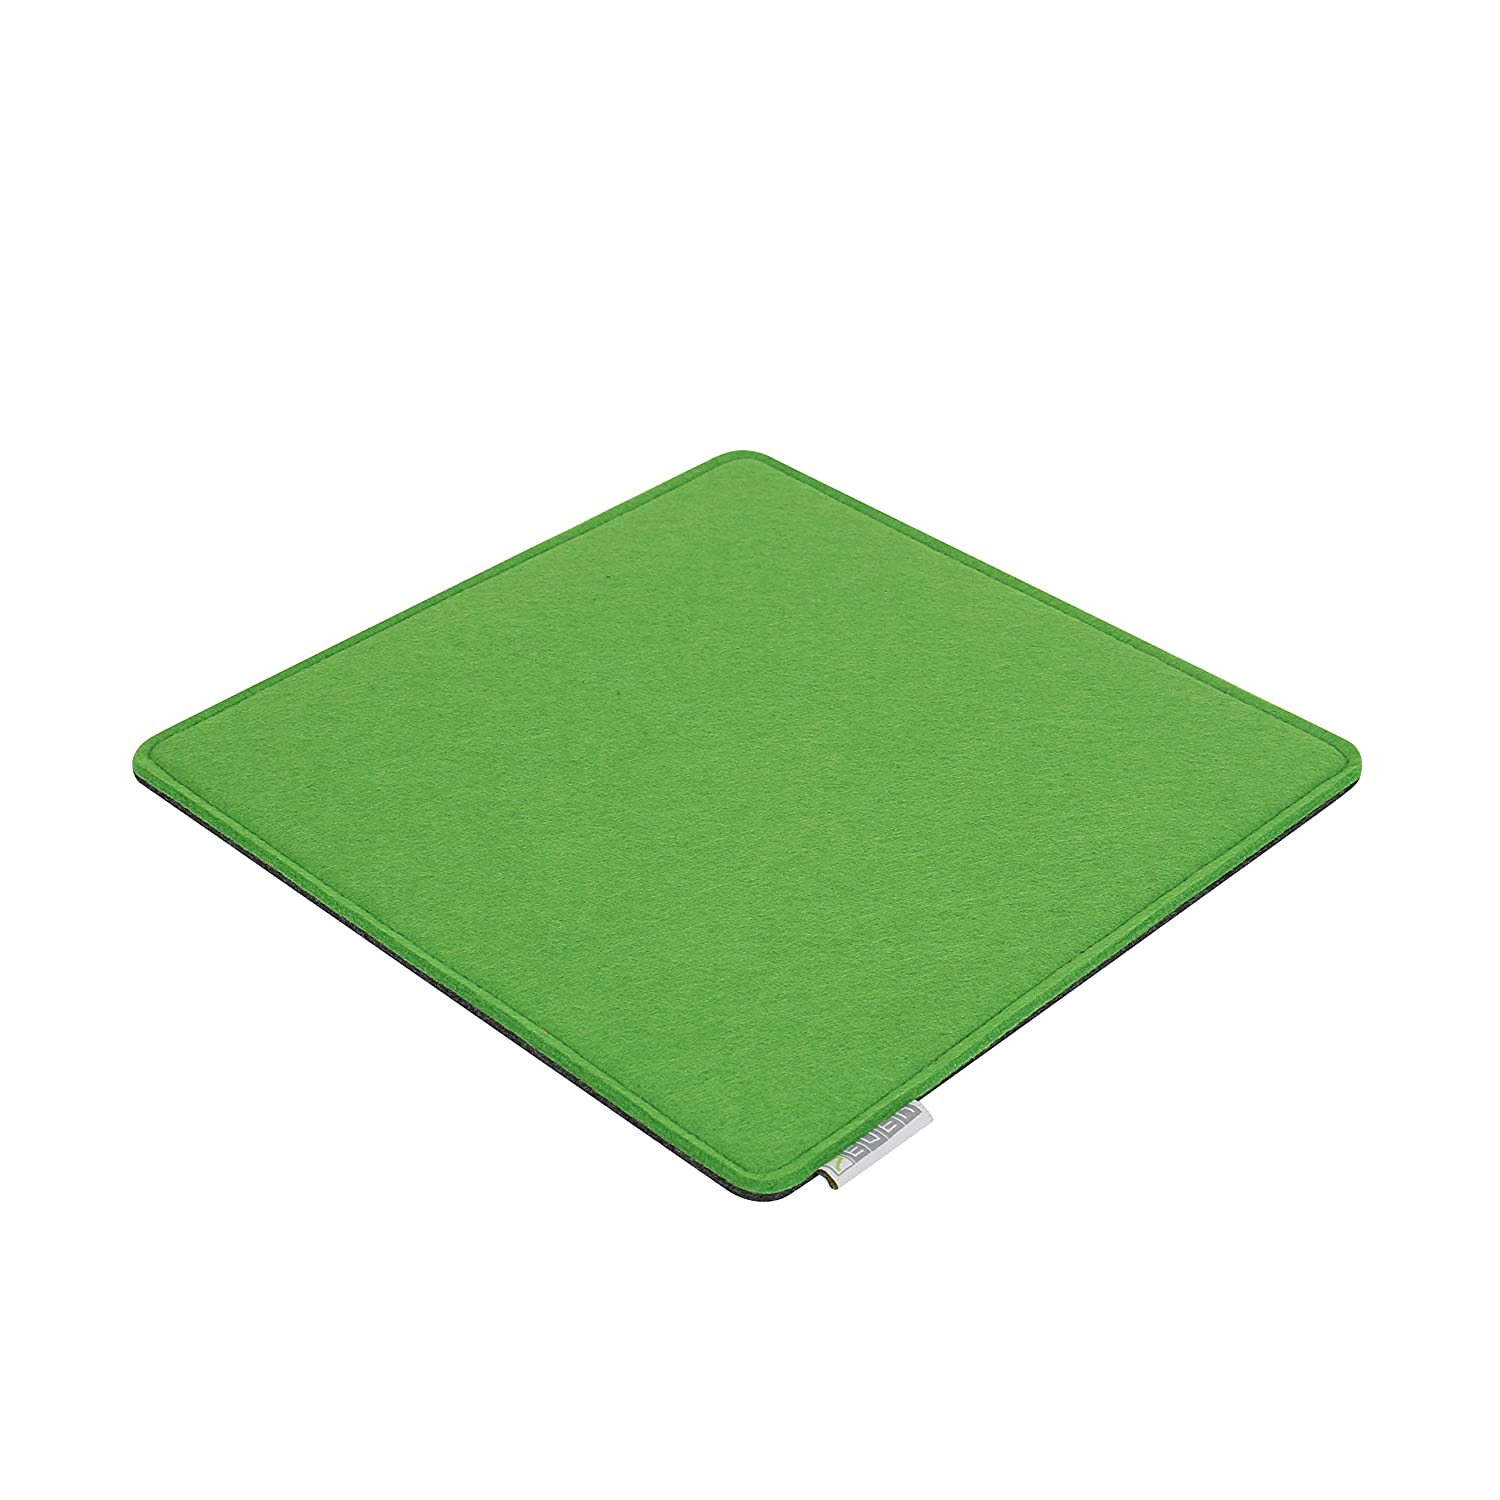 Felt Cushion 30 x 30 cm for Cube Stool Green/Grey – 4 Mm/4 mm on both sides 7even